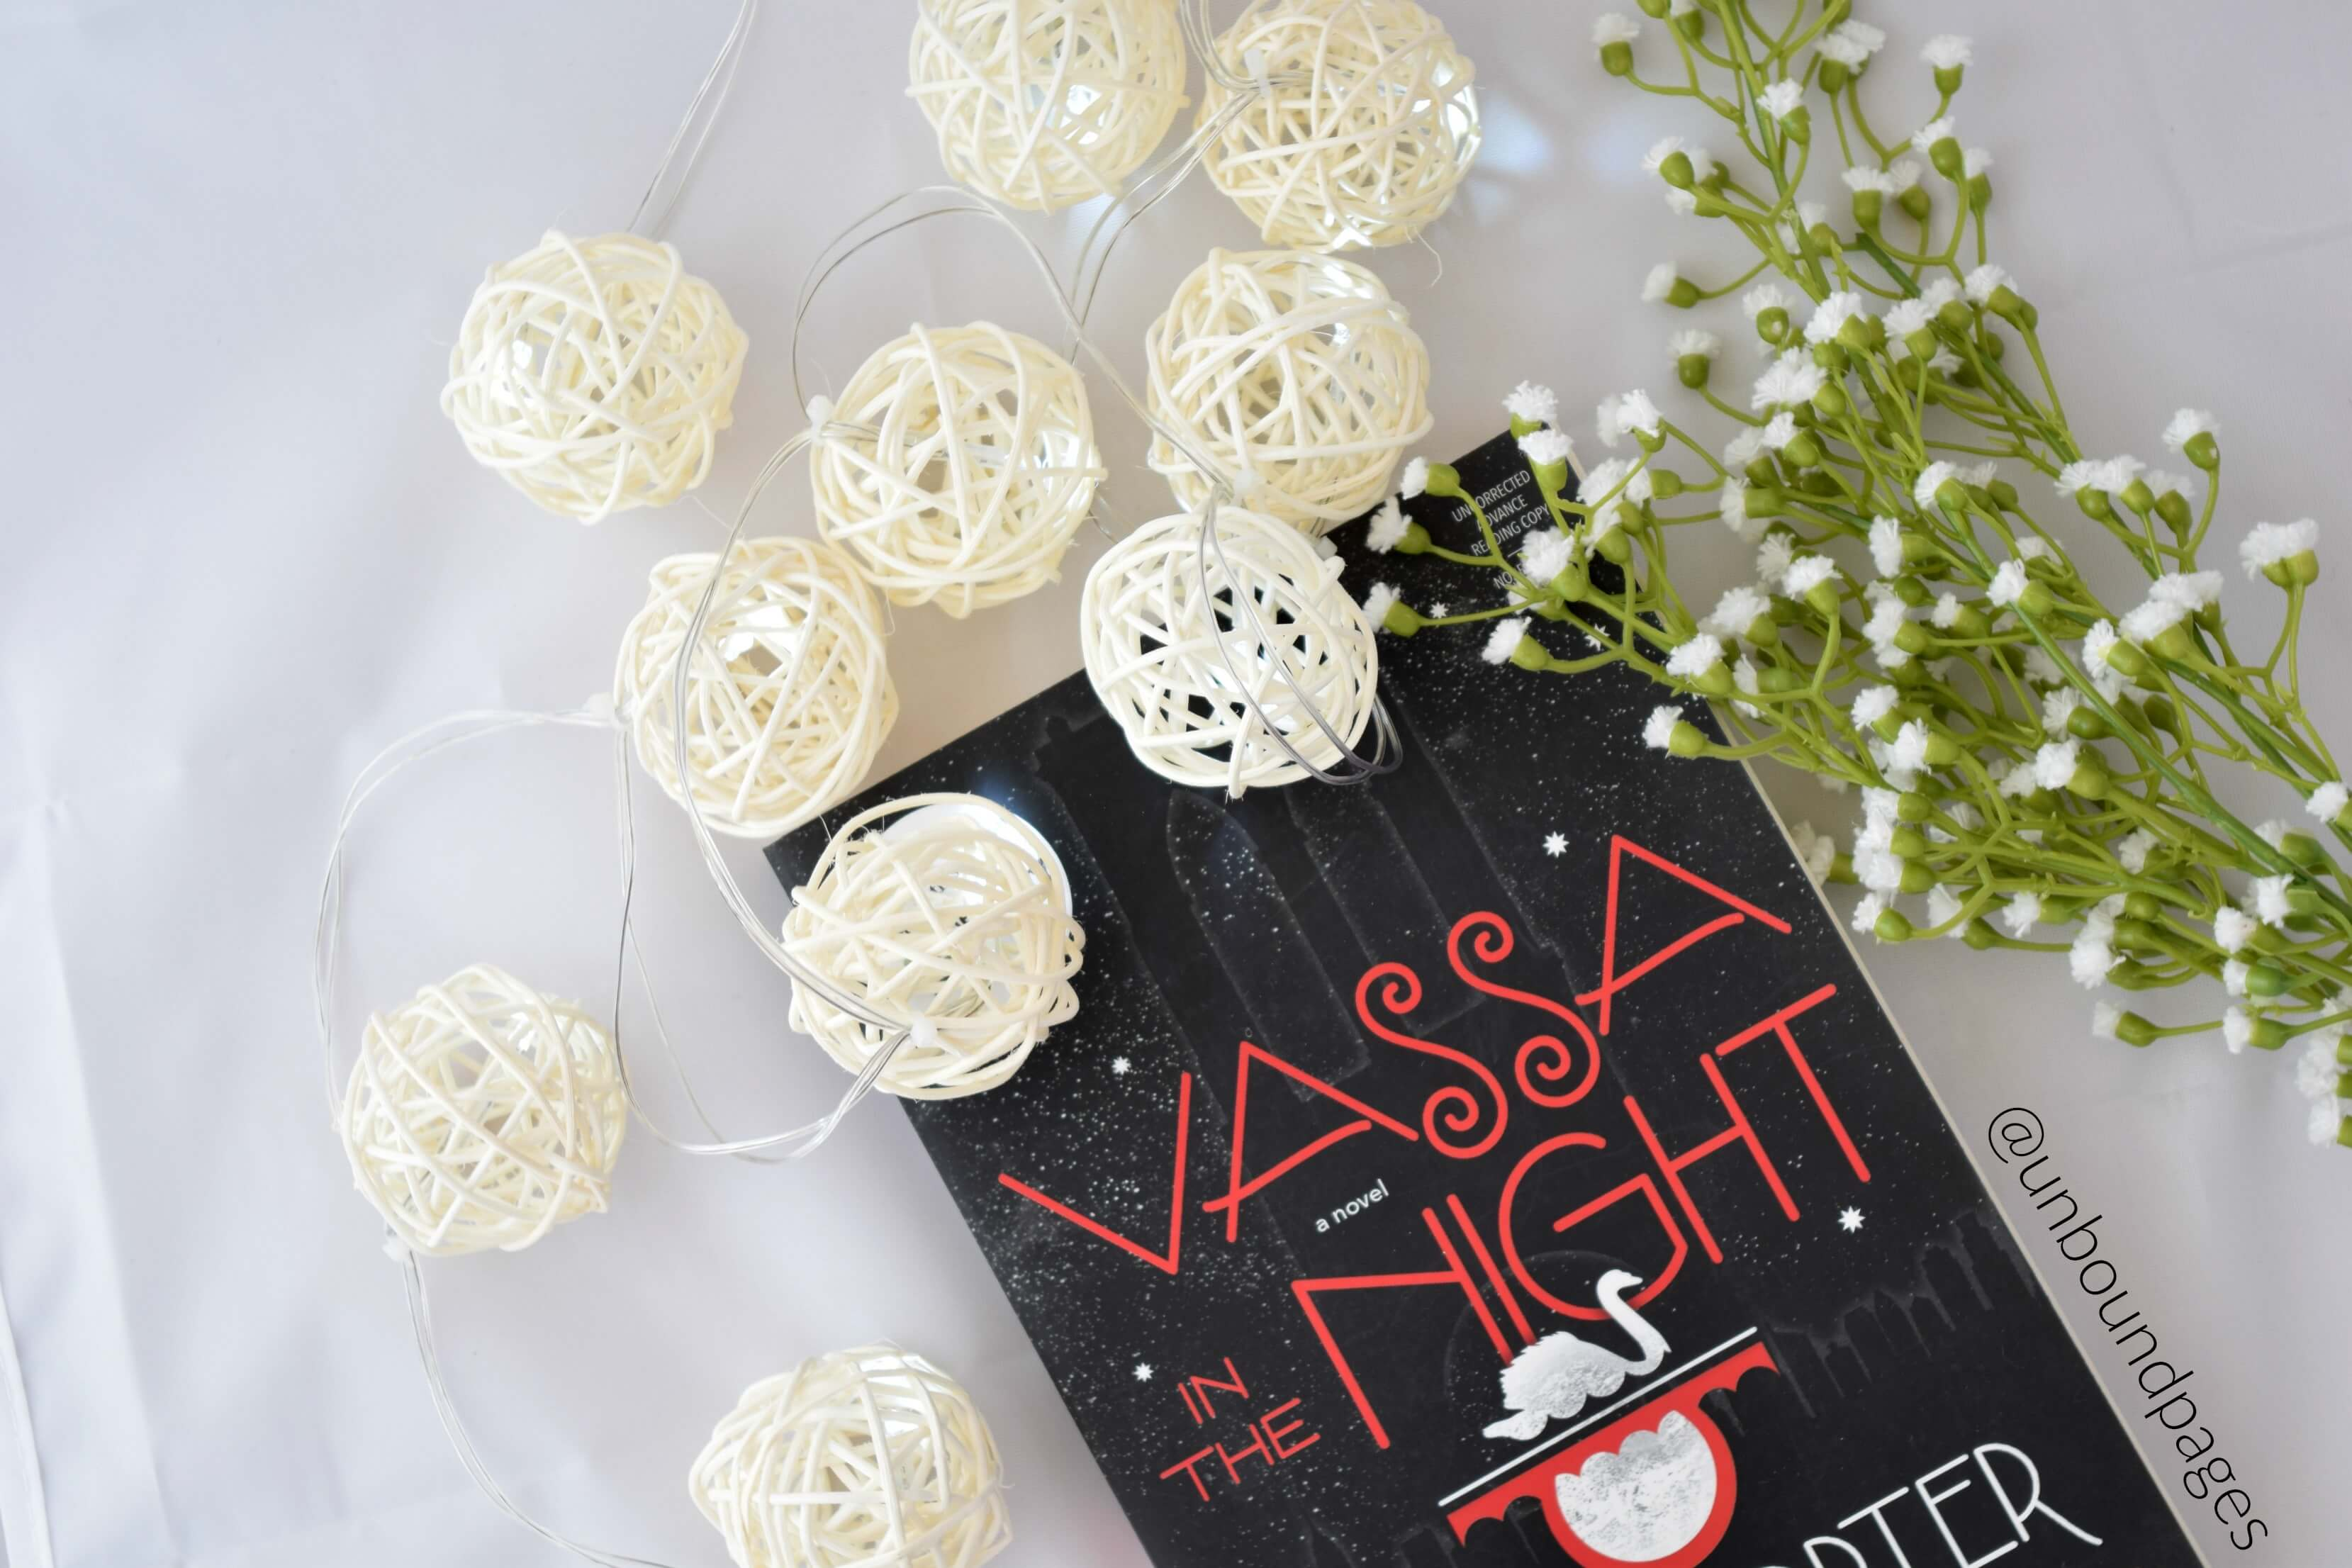 Vassa in the Night by Sarah Porter was just too odd for me. That paired with a lackluster plot and characters made me not enjoy it. - unboundpages.com